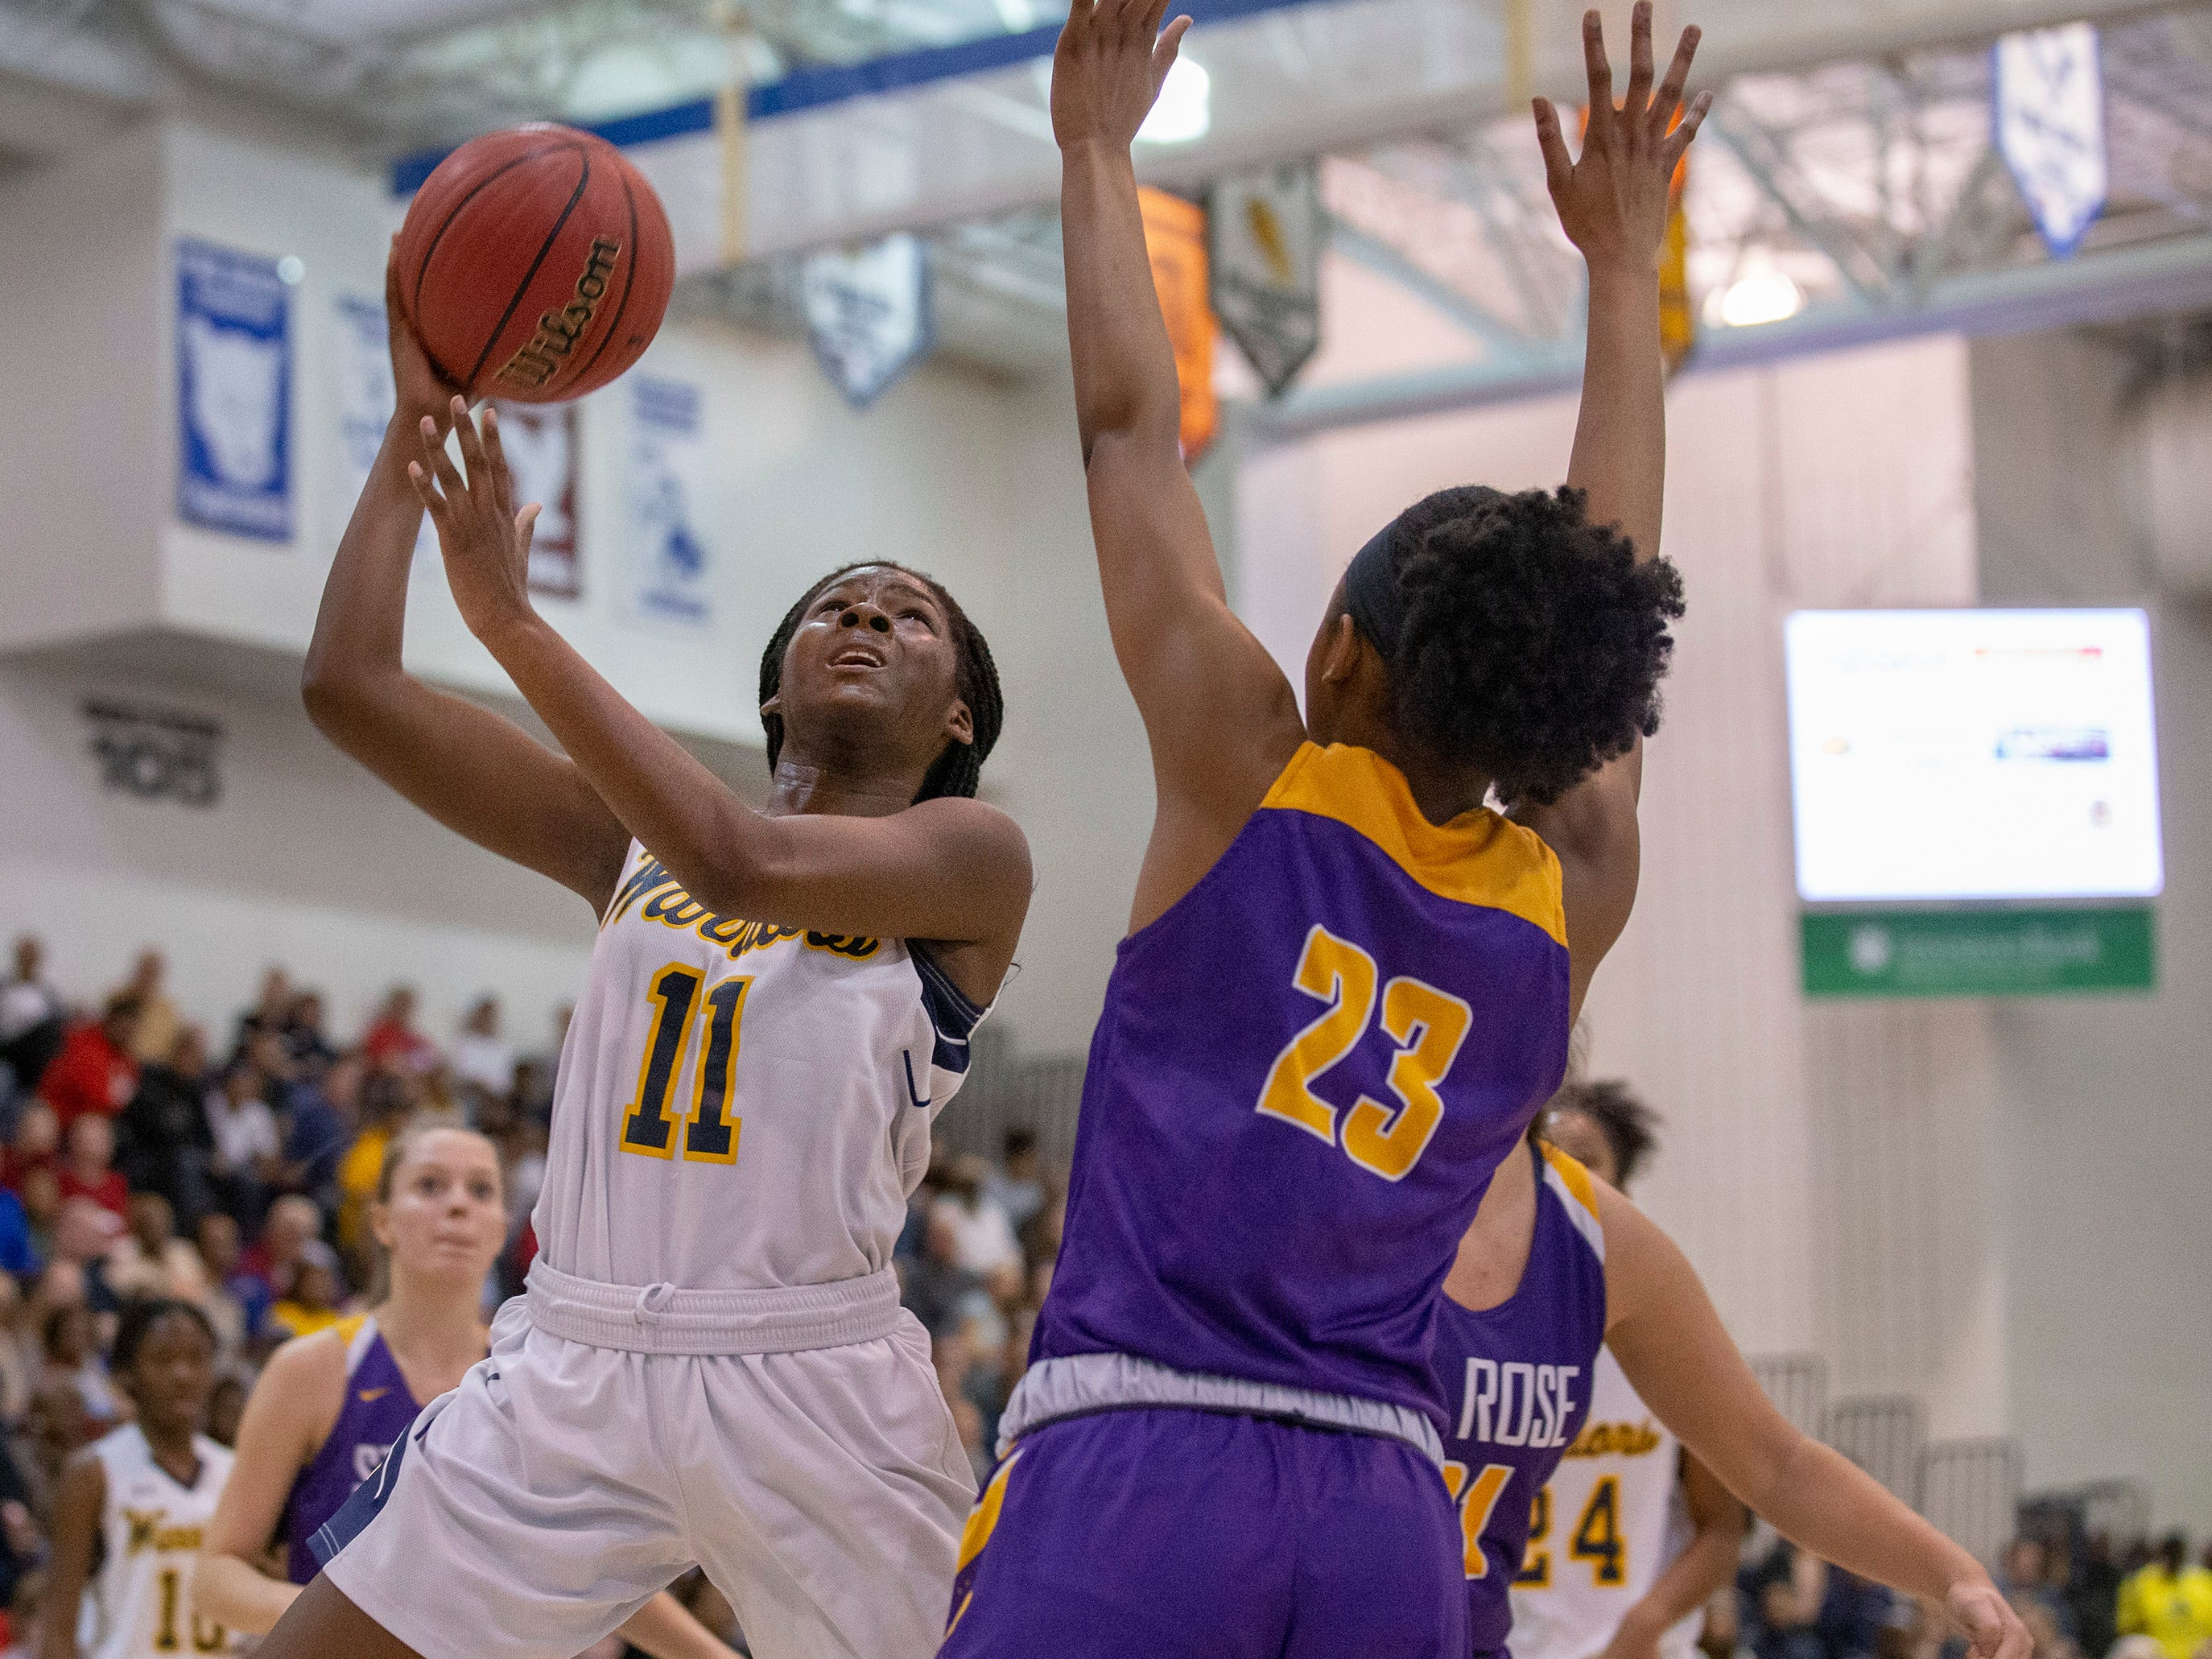 Franklin's Kennady Schenck goes up with shot as Makayla Andrews tries to block her. St Rose Girls Basketball vs Franklin High School in NJSIAA Tournament of Champions Semifinal in Toms River on March 14, 2019.